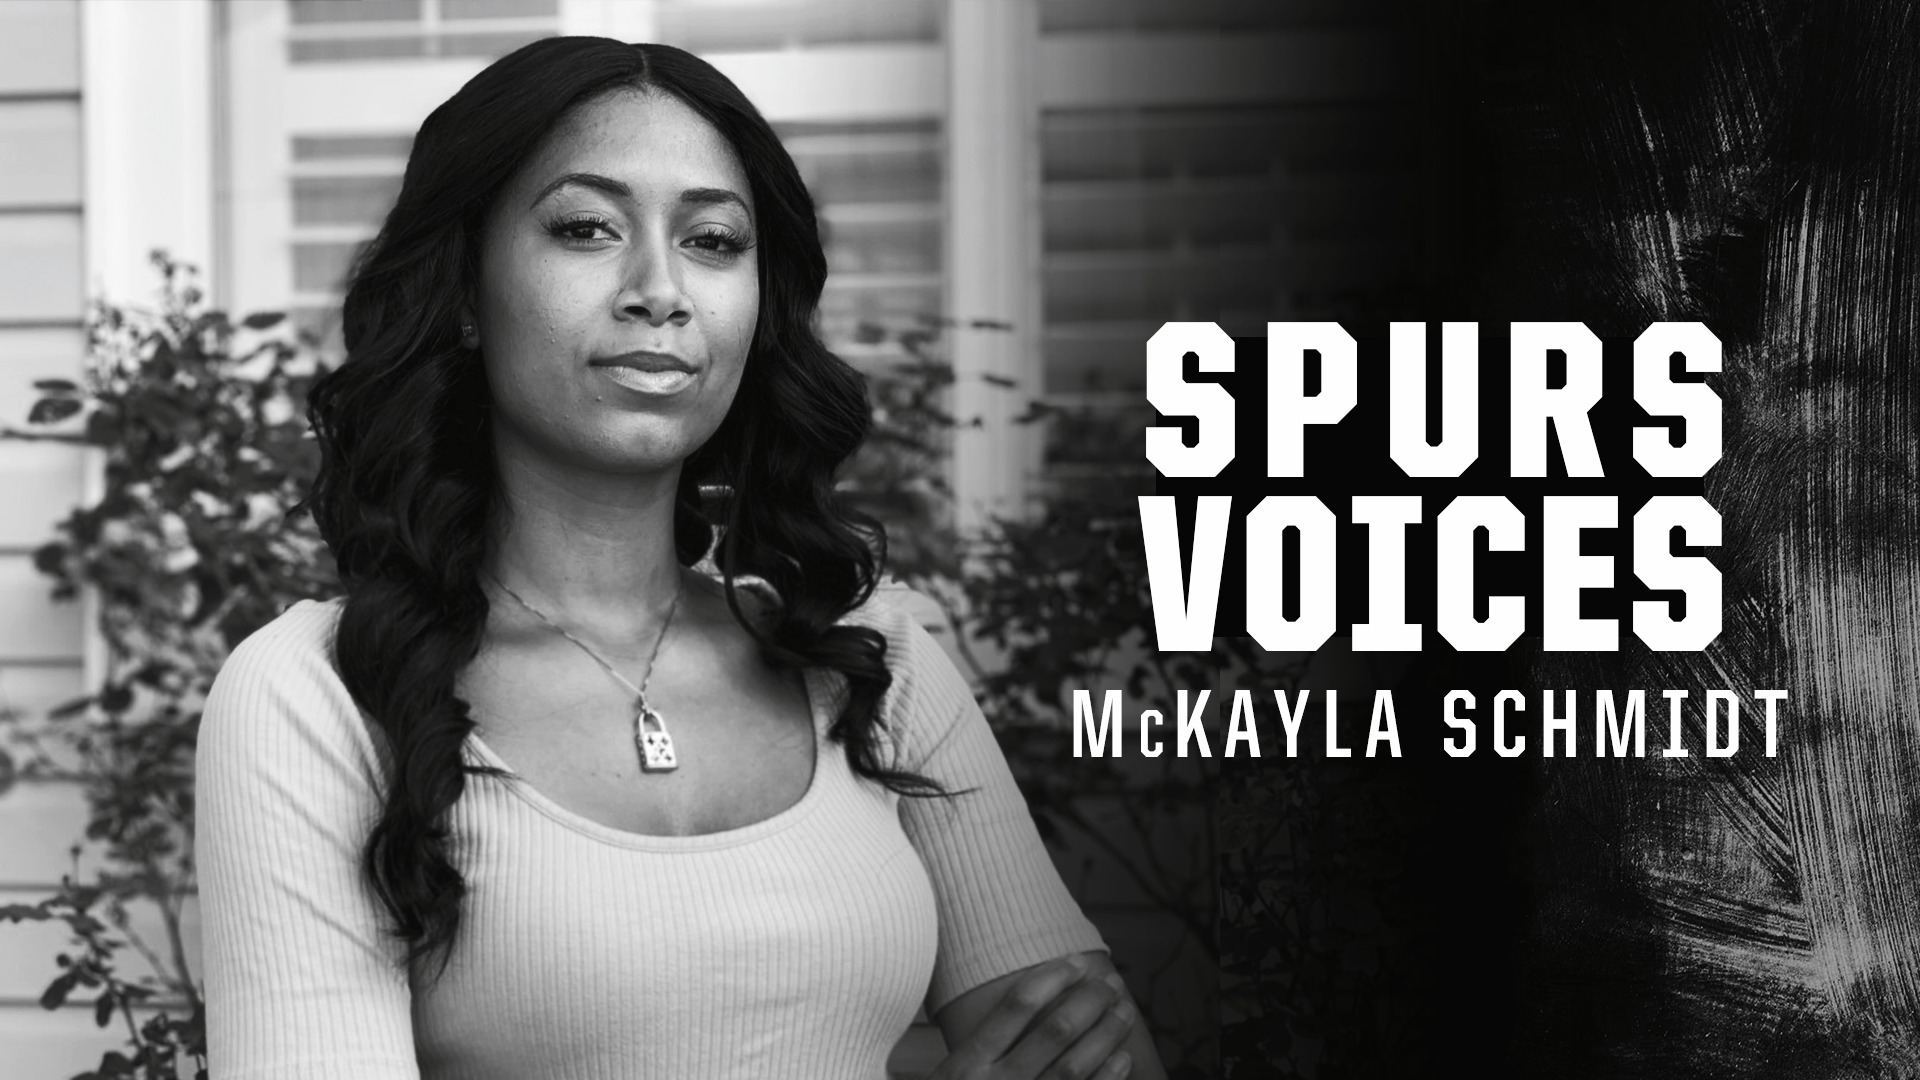 McKayla Schmidt | Spurs Voices